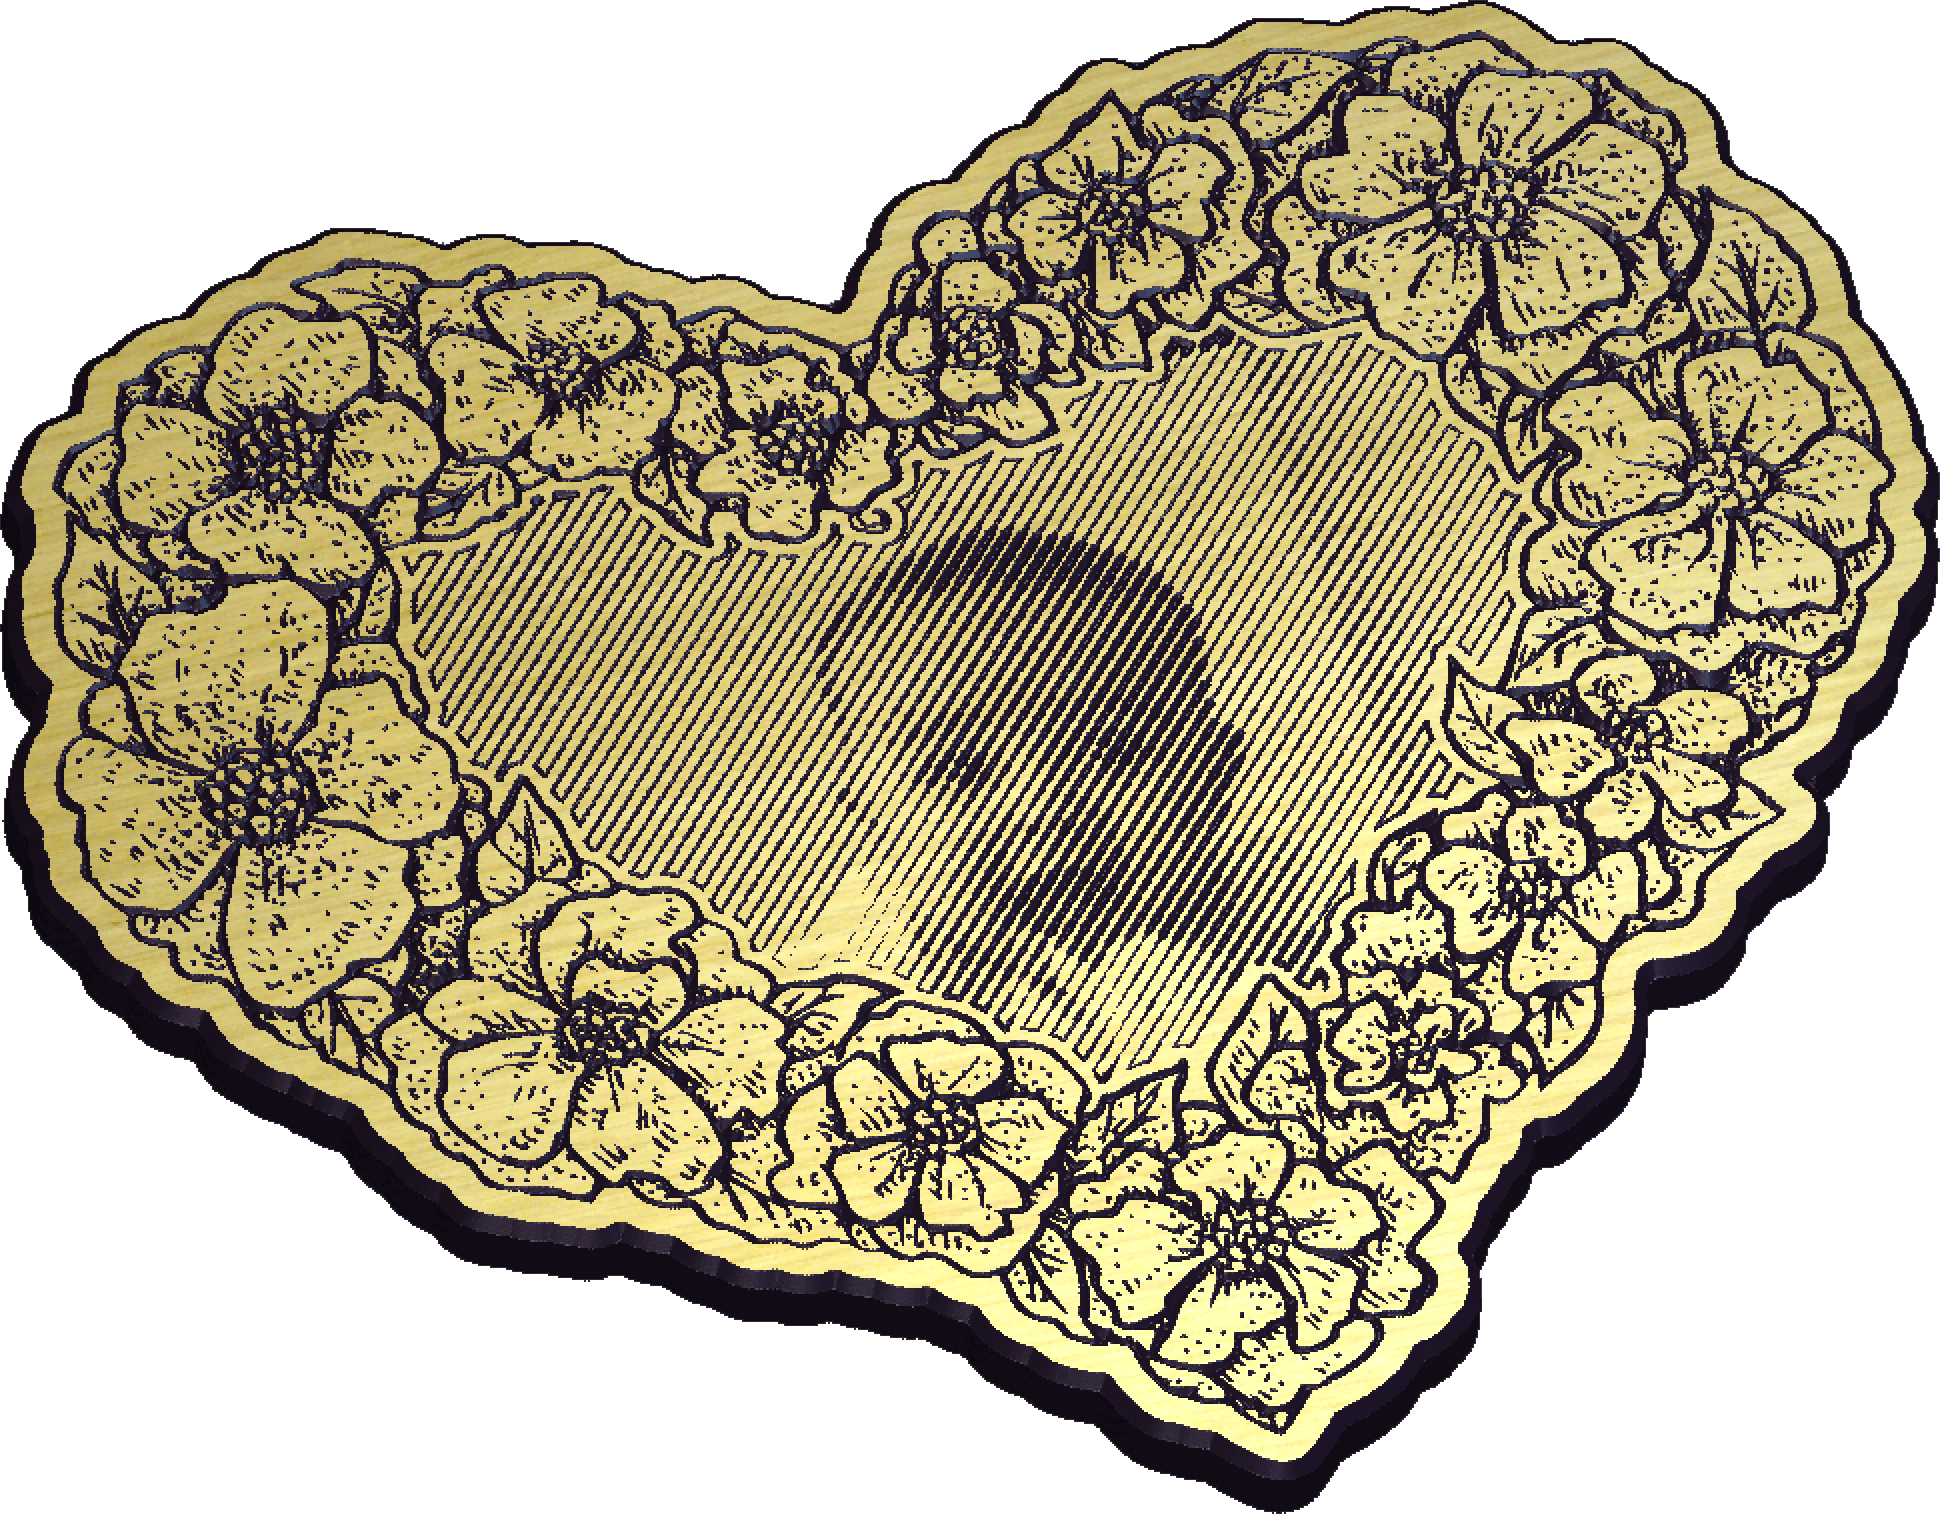 Carving a Vbit photo in a frame